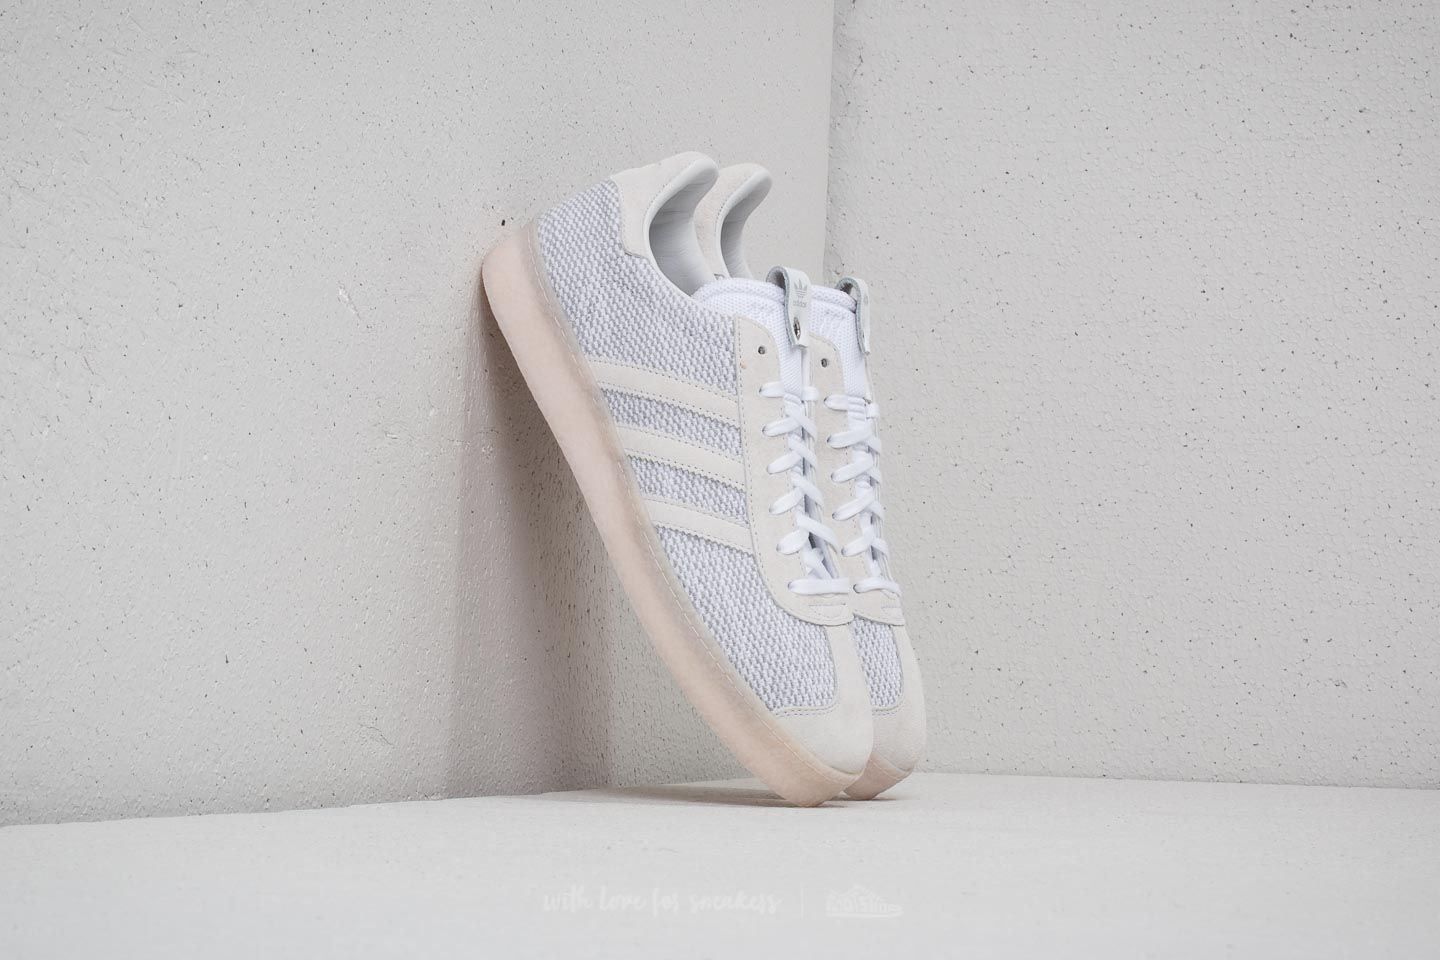 low priced 88606 f3a37 adidas Consortium x Juice Gazelle Primeknit Ftw White Core Black Ftw  White at a